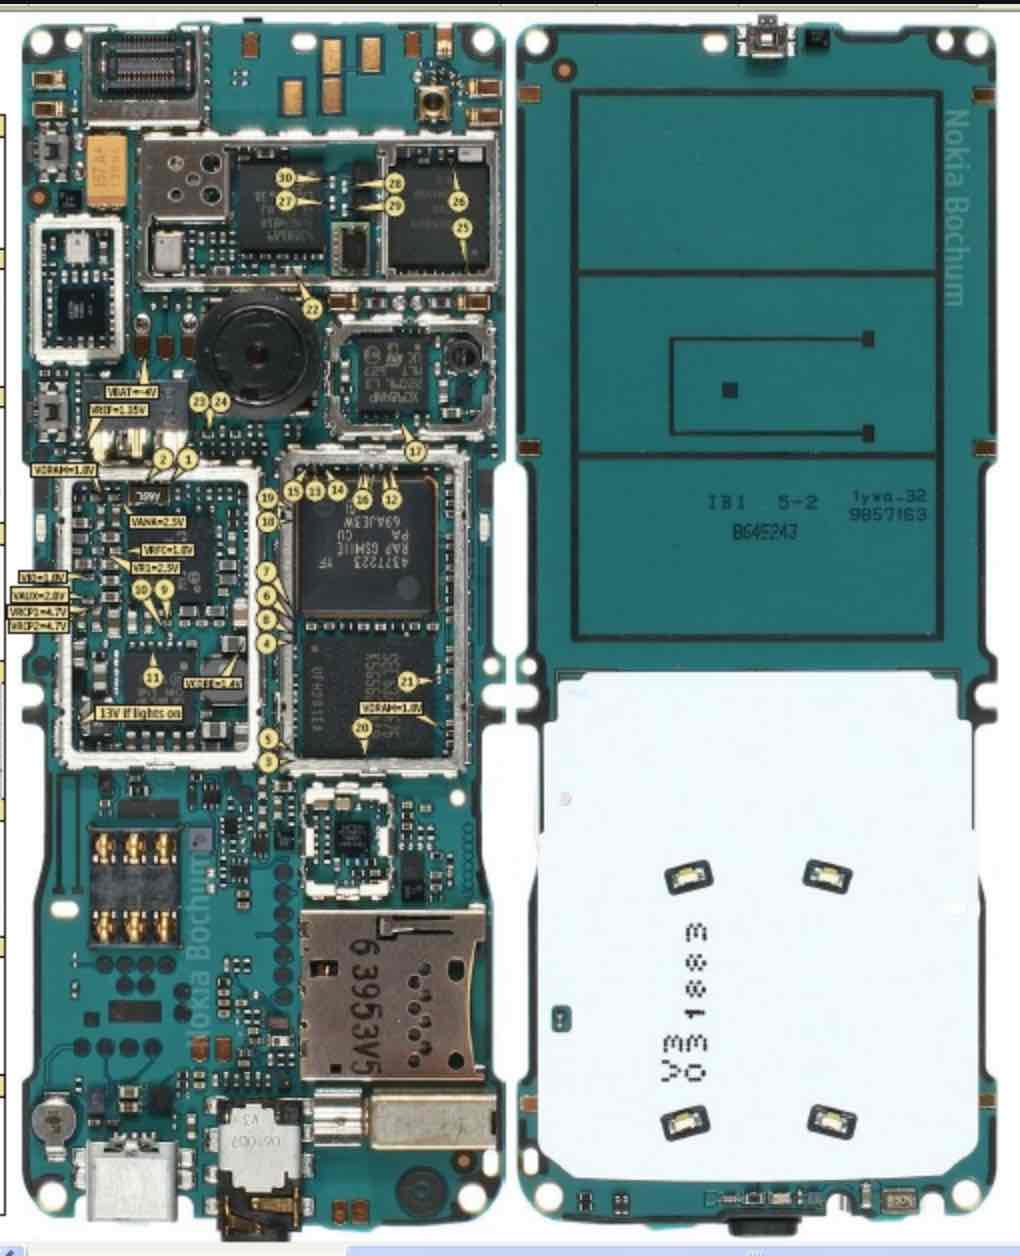 Phones Hardware Problems And The First Aid Solution Without Going To Iphone 4 Diagram Logic Board Phone Components Are Physical Parts Or Of A These Include Lcdscreen Housing Memory Card Battery